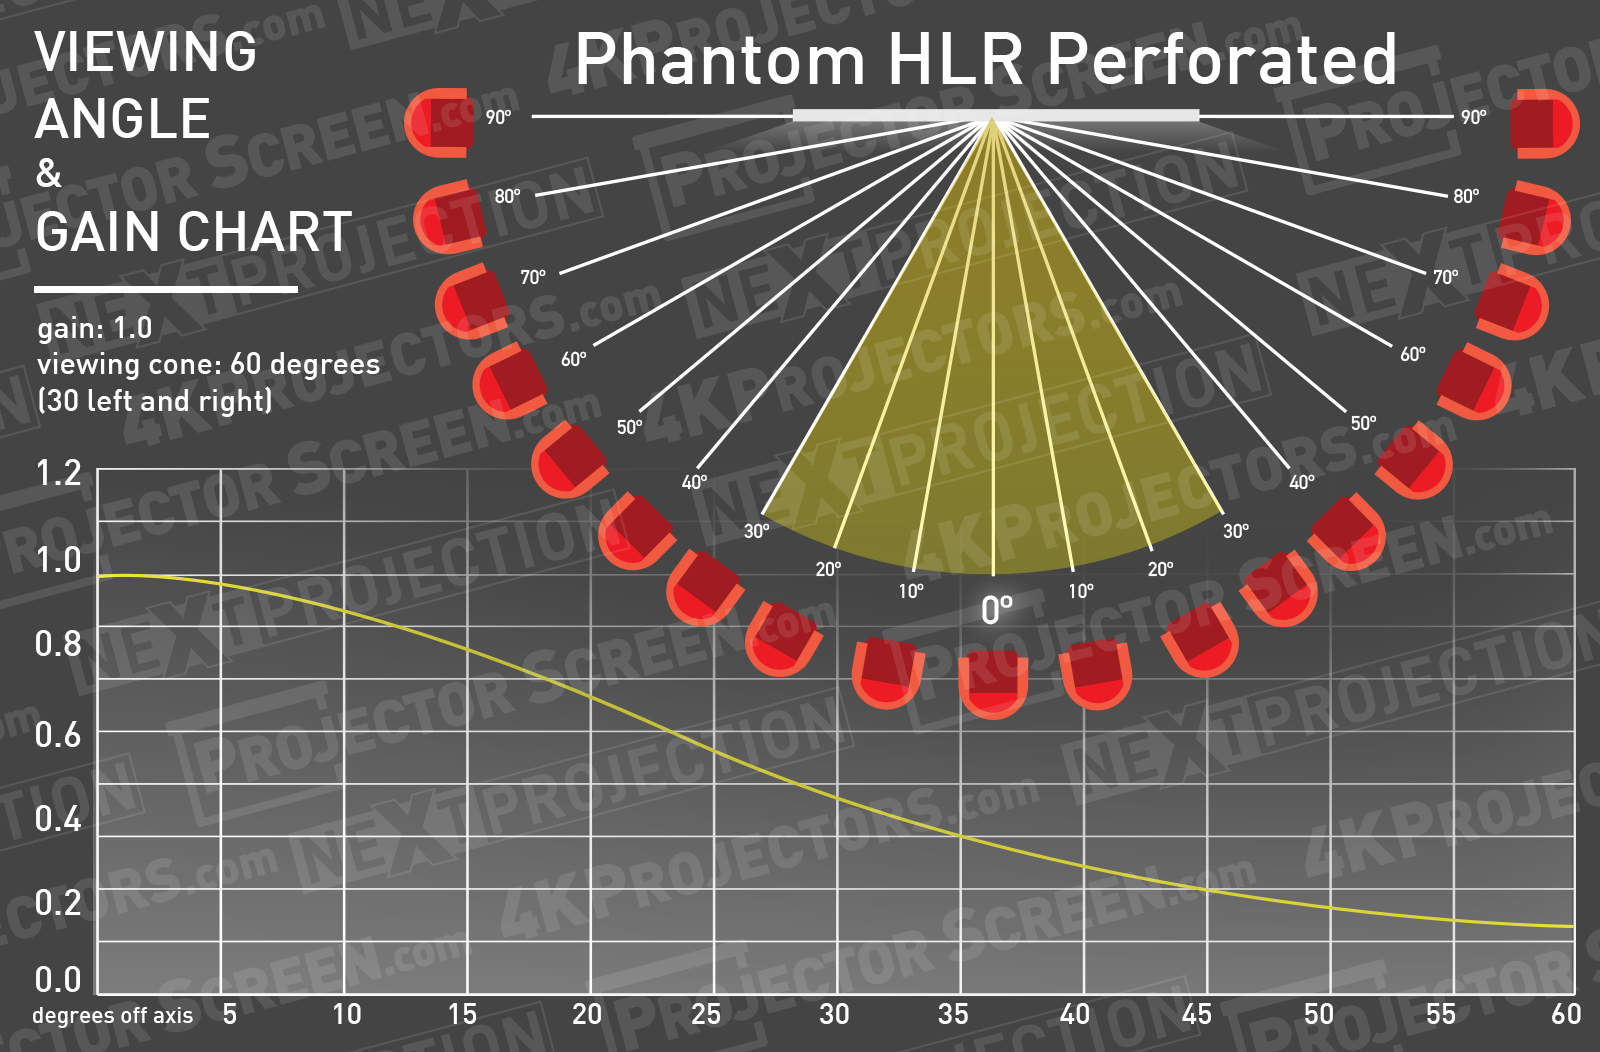 Stewart Phantom HALR Perforated Half Gain Angle Chart